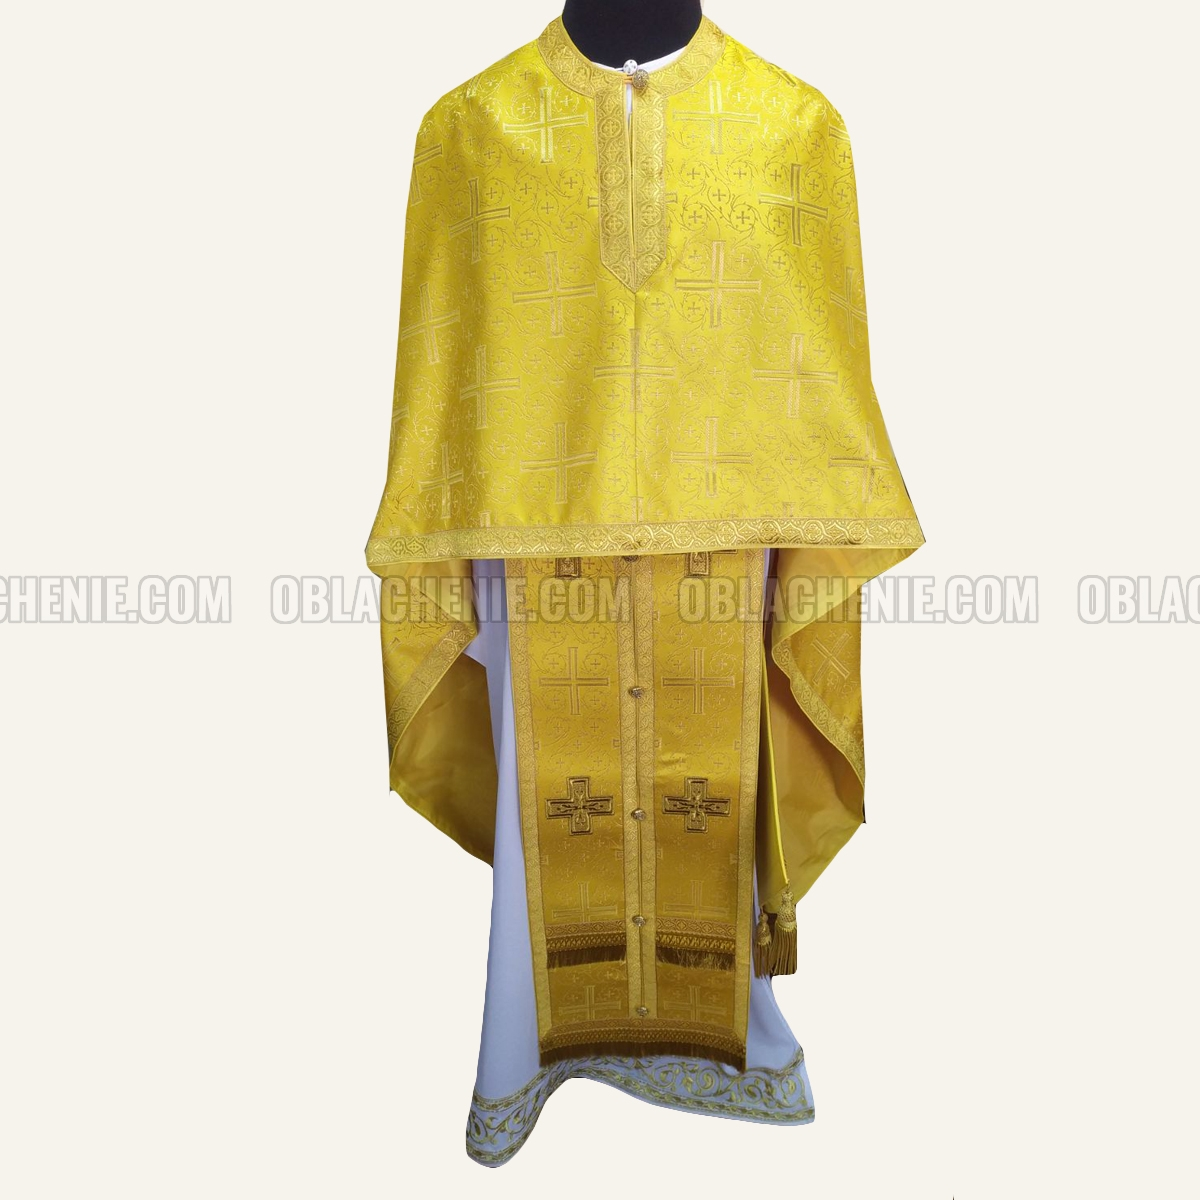 PRIEST'S VESTMENTS 10976